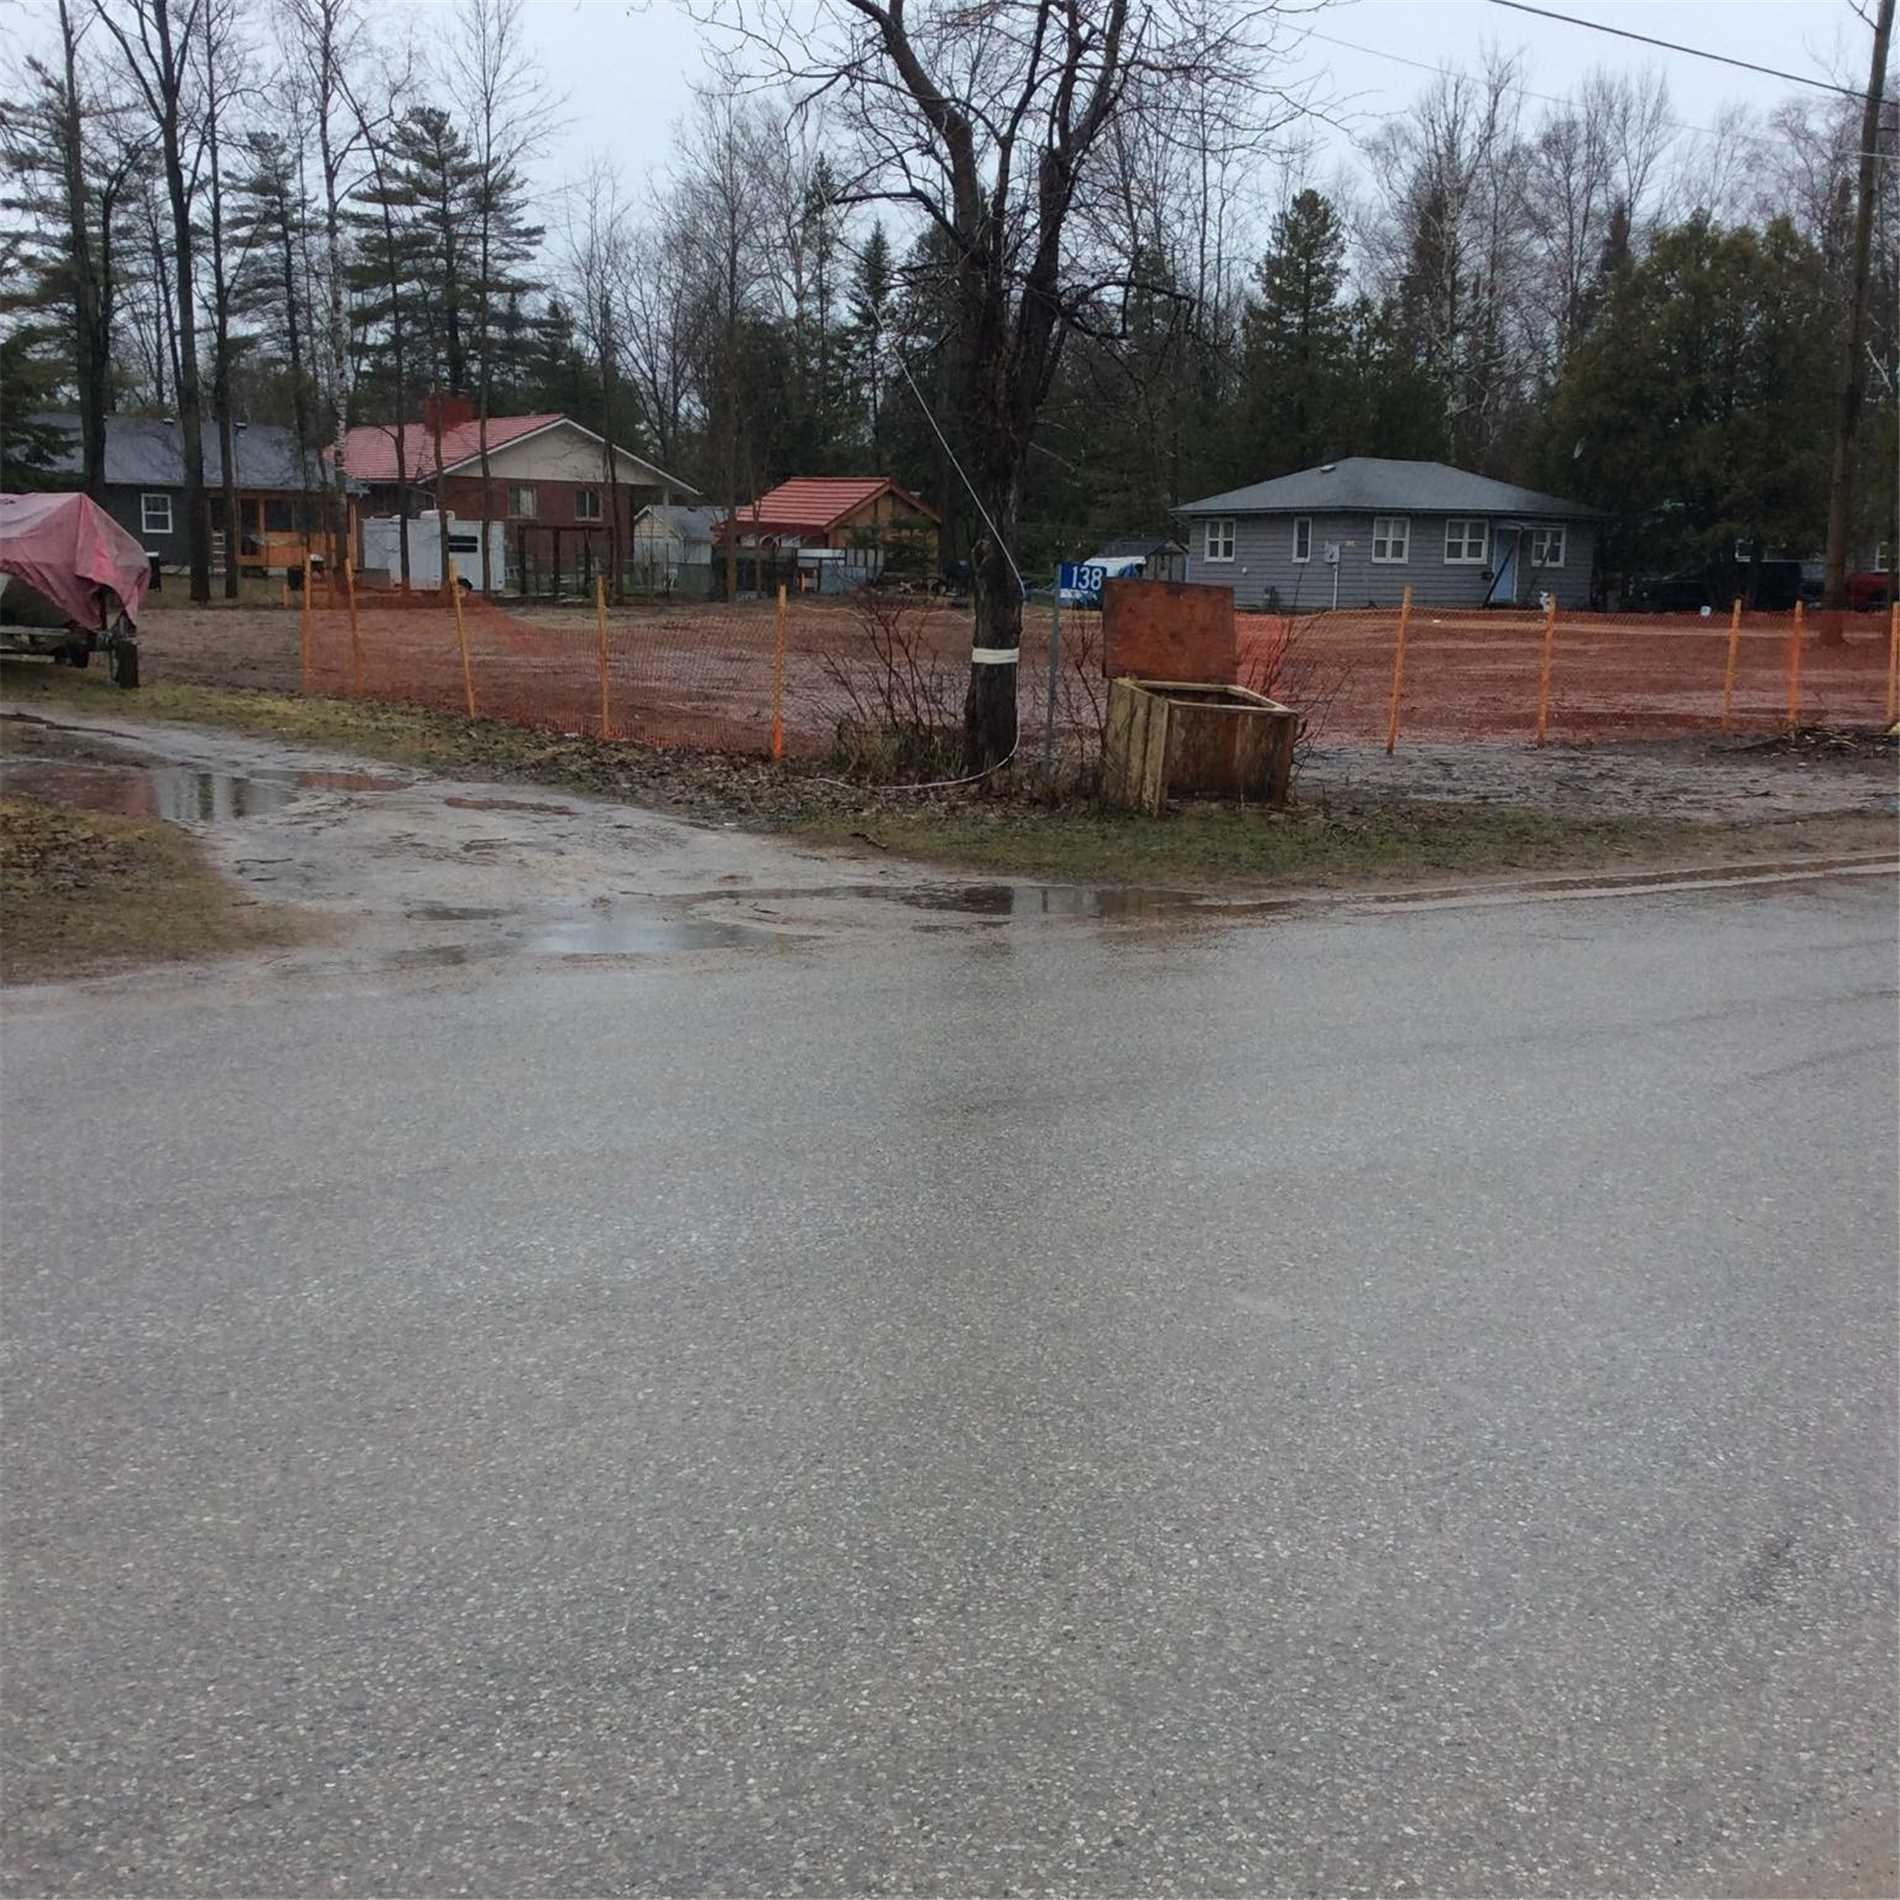 Vacant Land For Sale In Wasaga Beach , ,Vacant Land,For Sale,45th